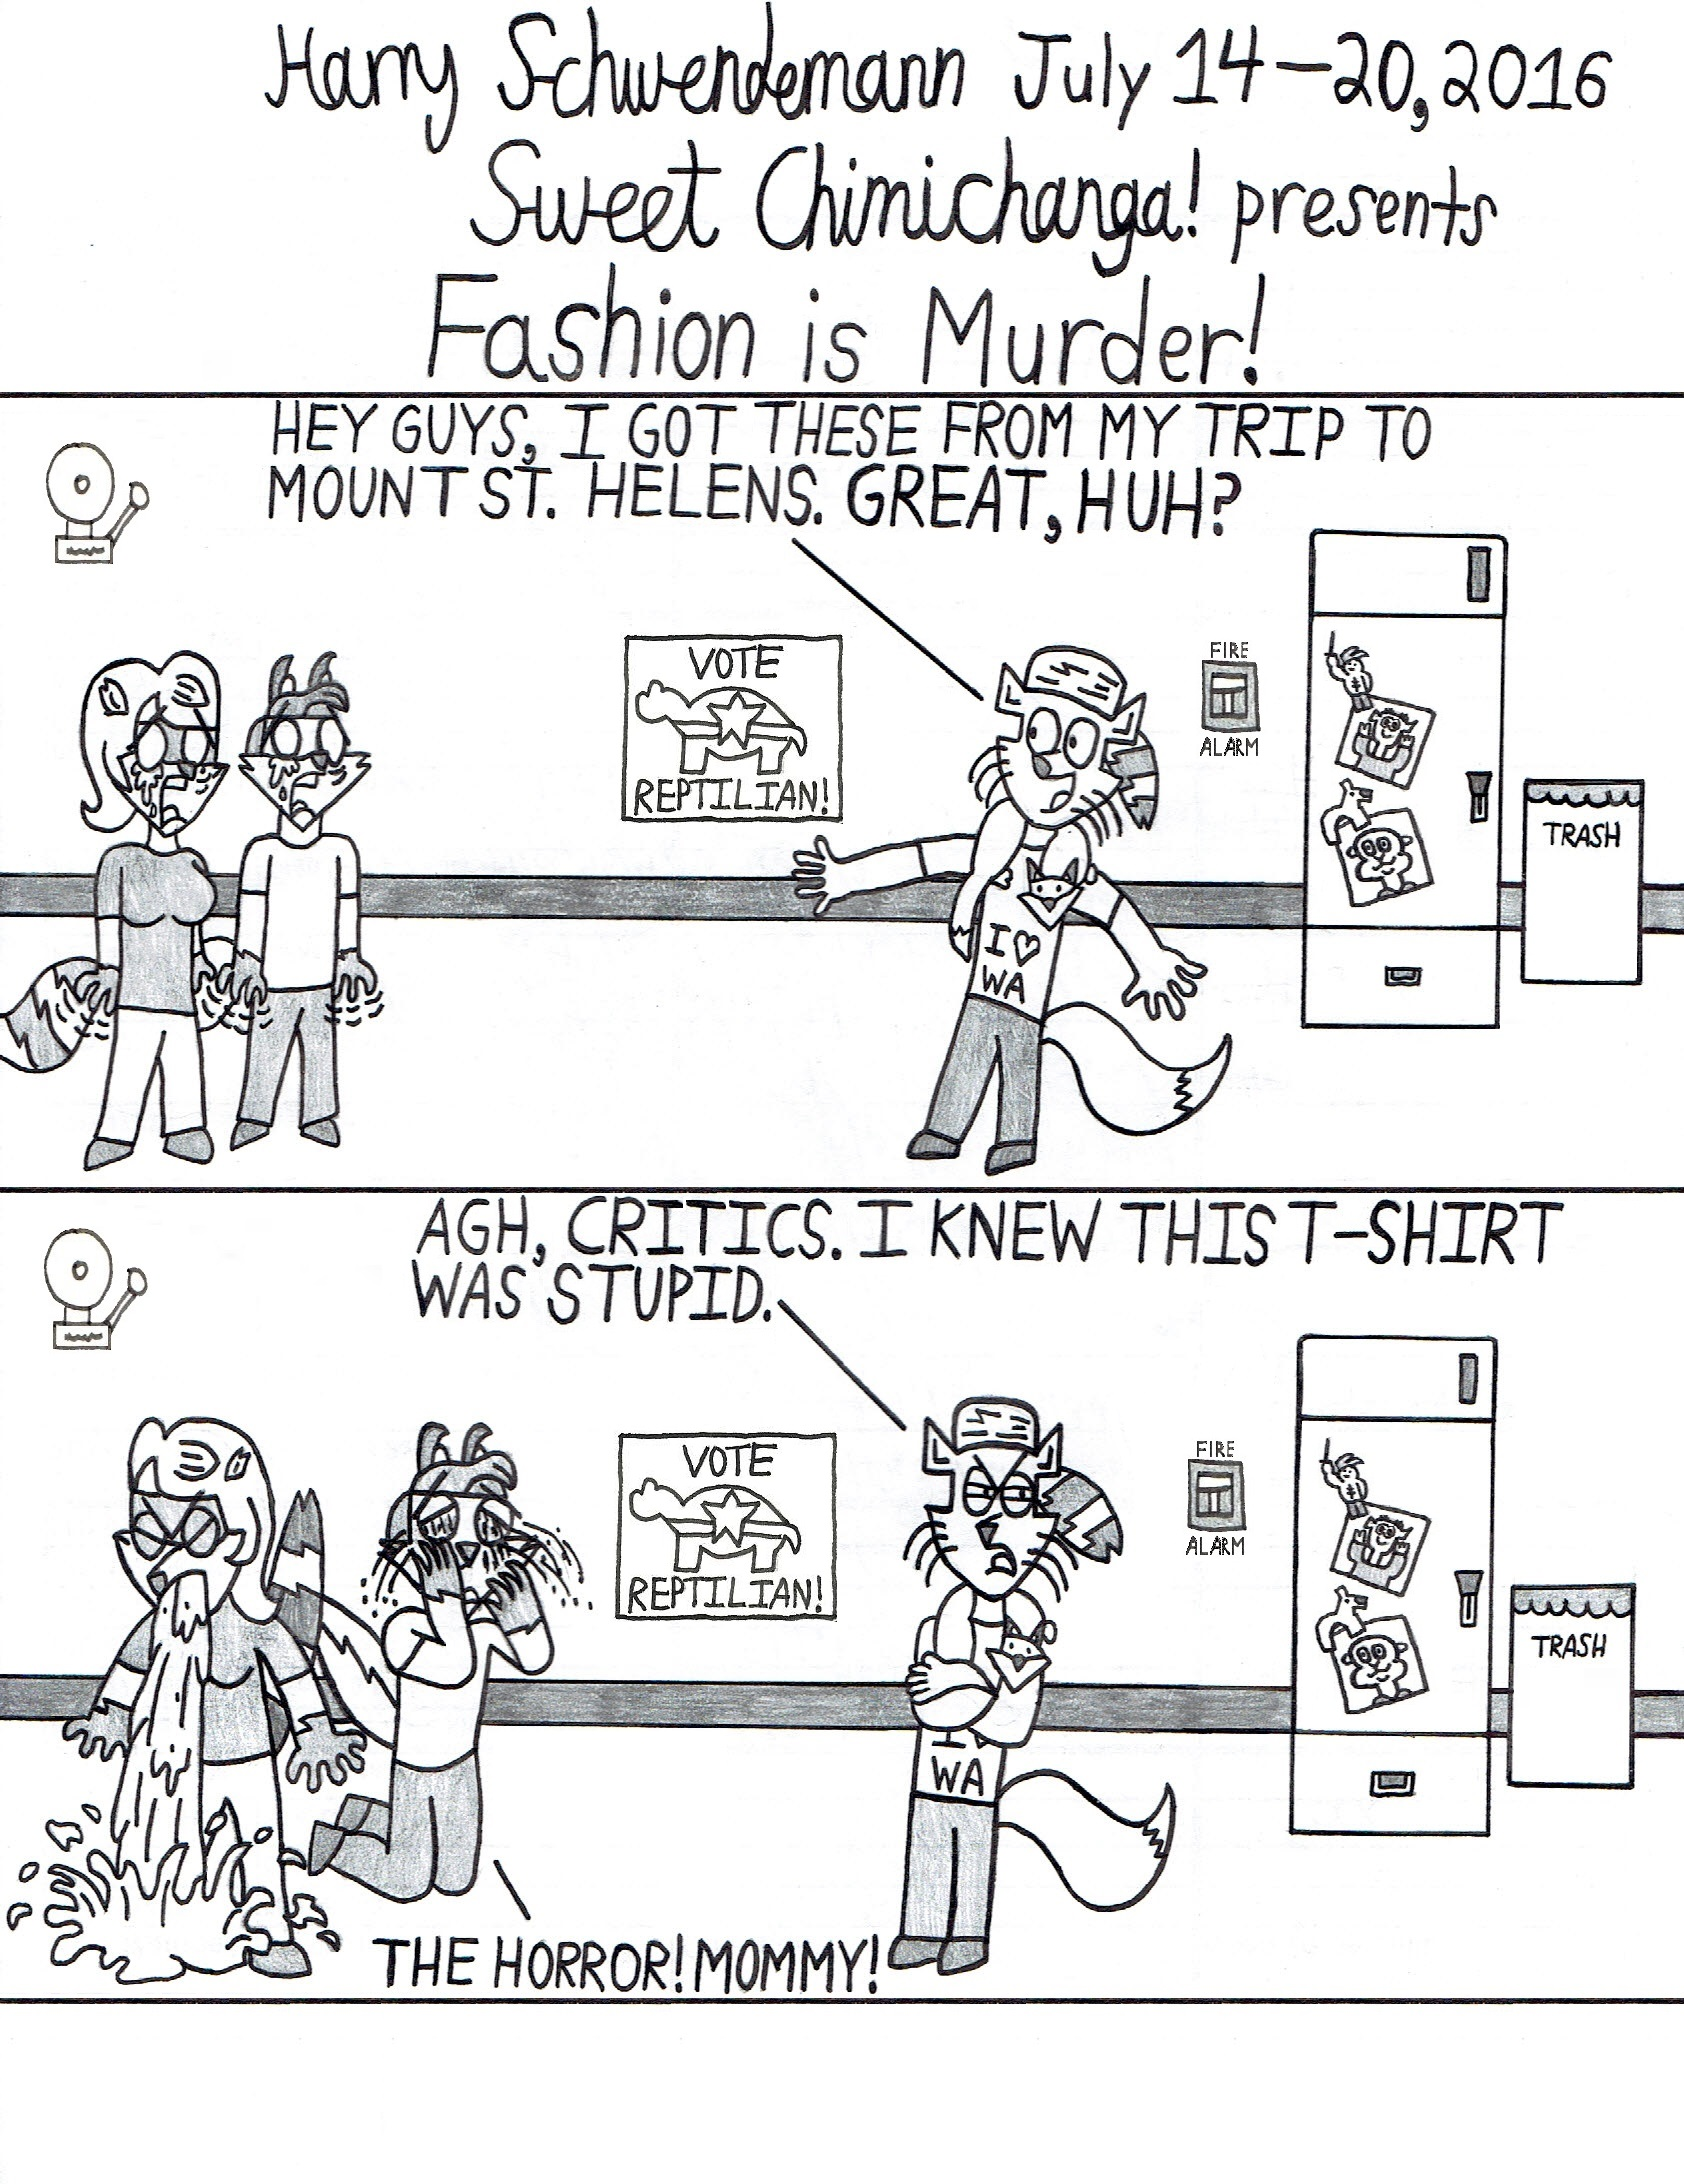 Fashion is Murder!